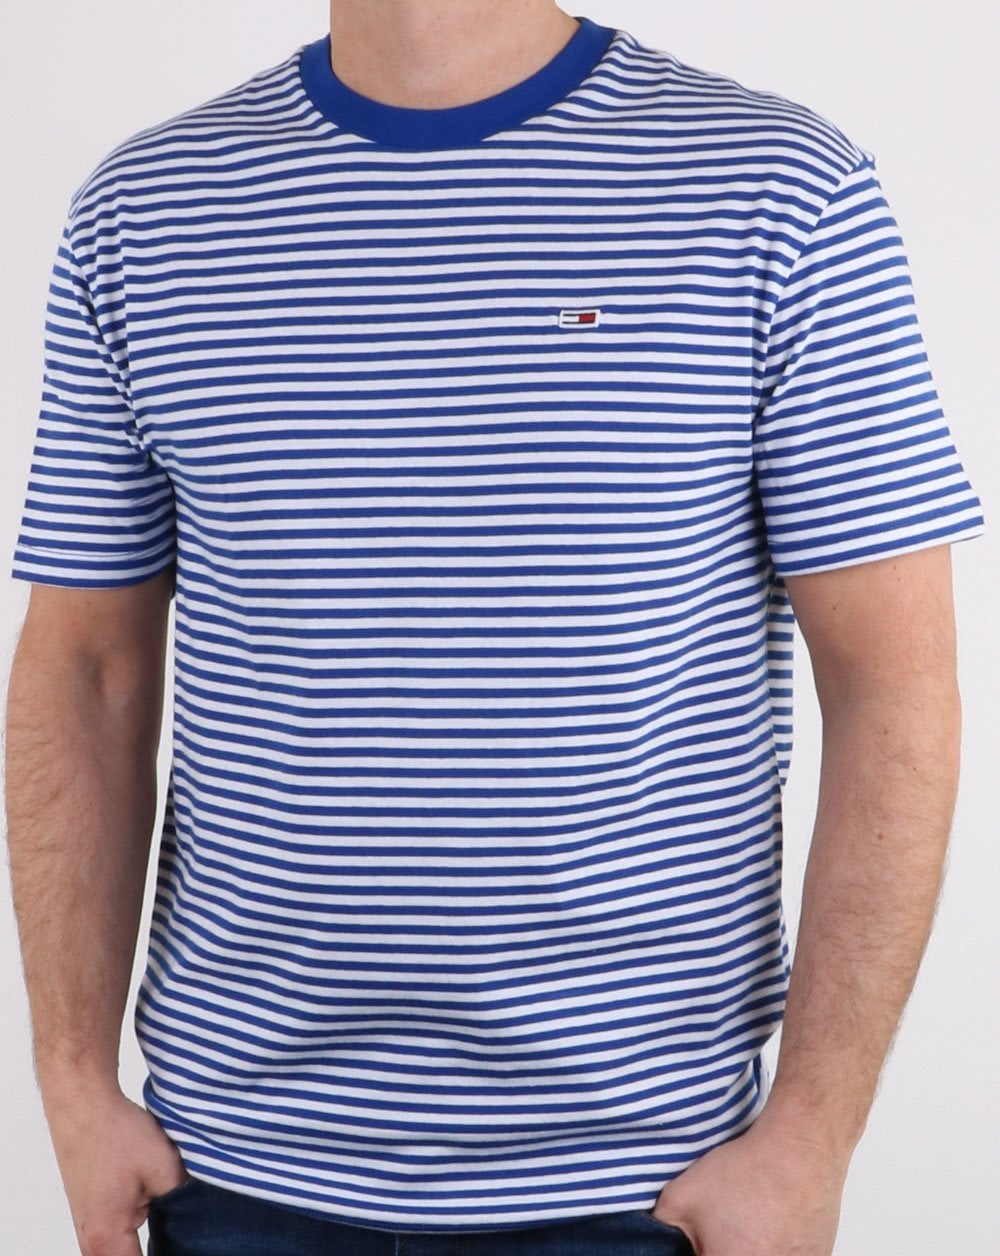 4ca5bcc3 Tommy Hilfiger Stripe Tee Limoges/white, Striped Tee, Tommy Jeans